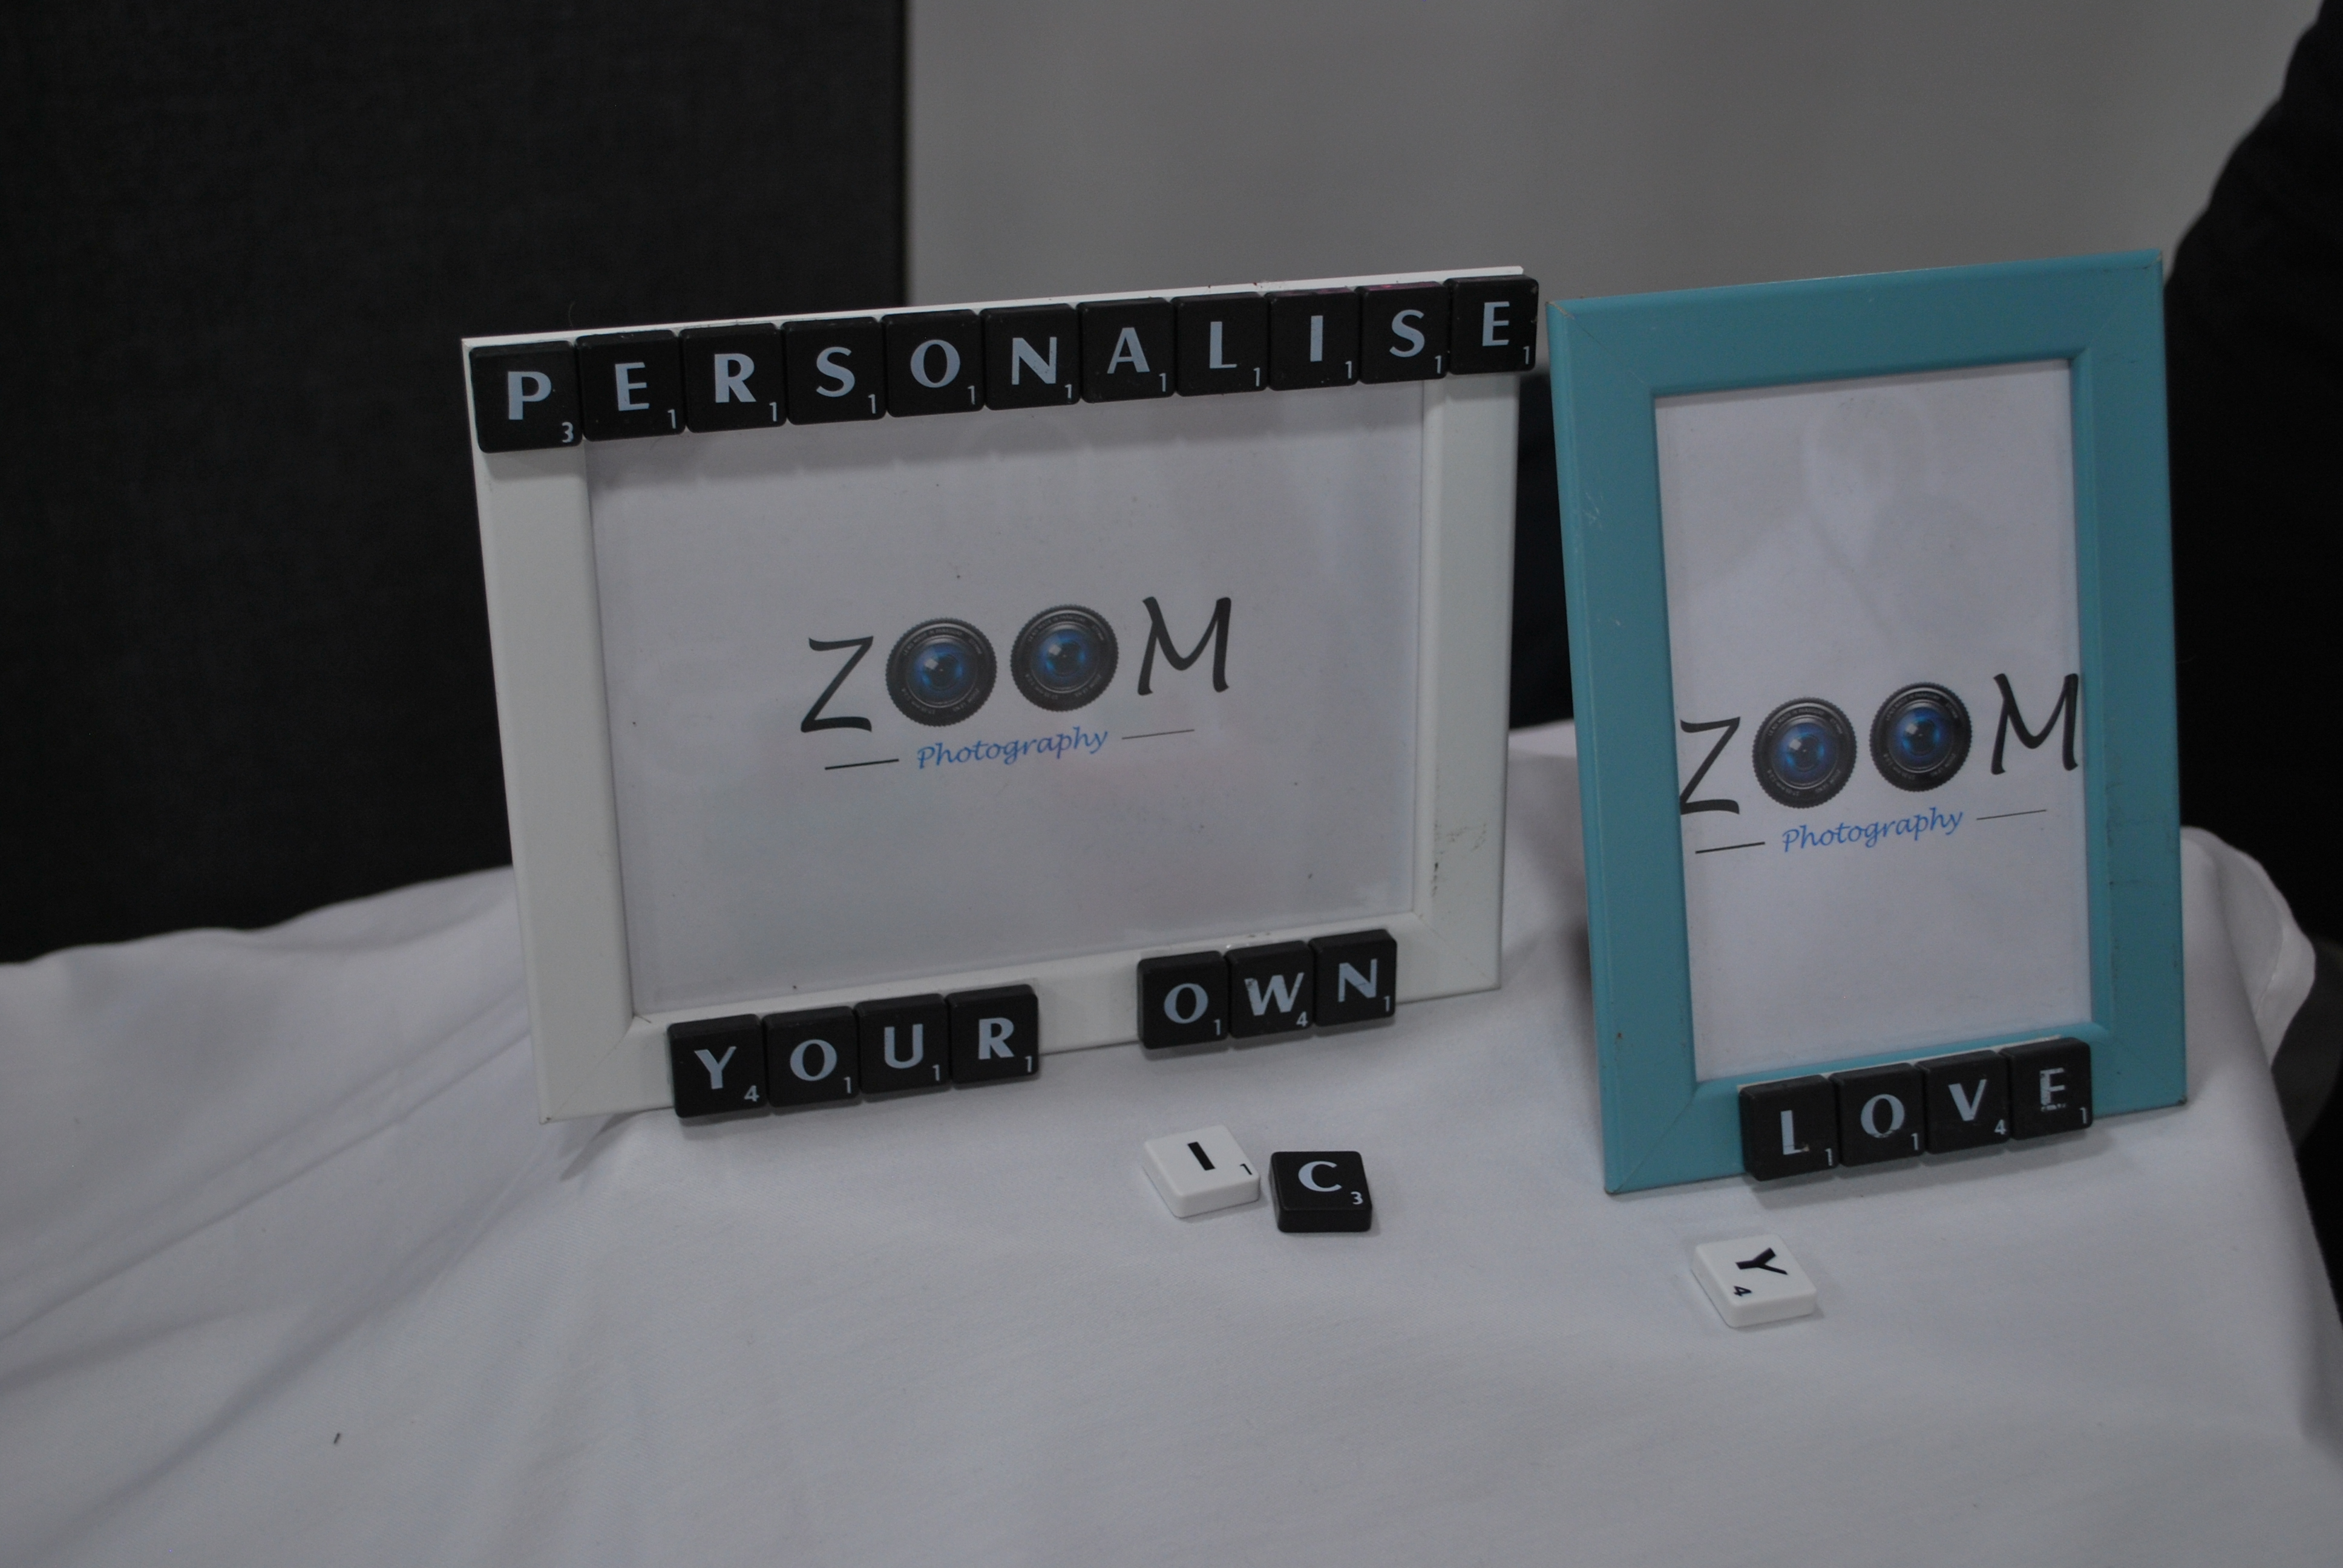 Zoom Photography product